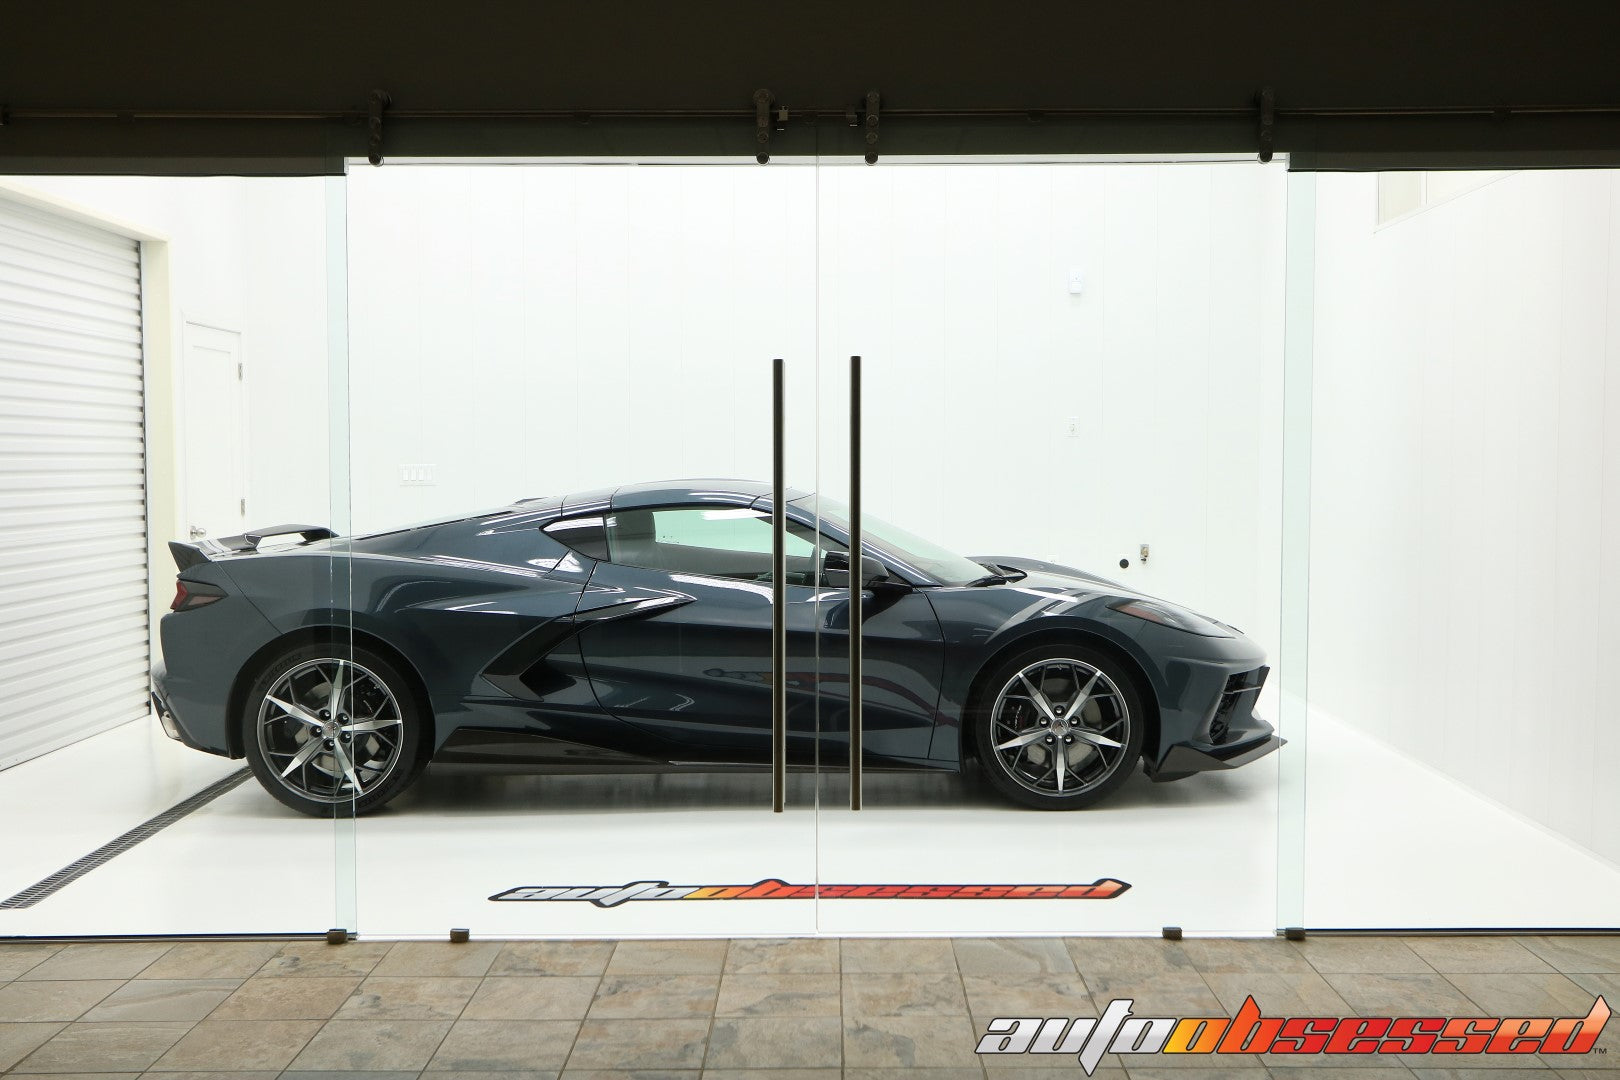 2020 Chevrolet Corvette C8 New Vehicle Car Detailing - Auto Obsessed